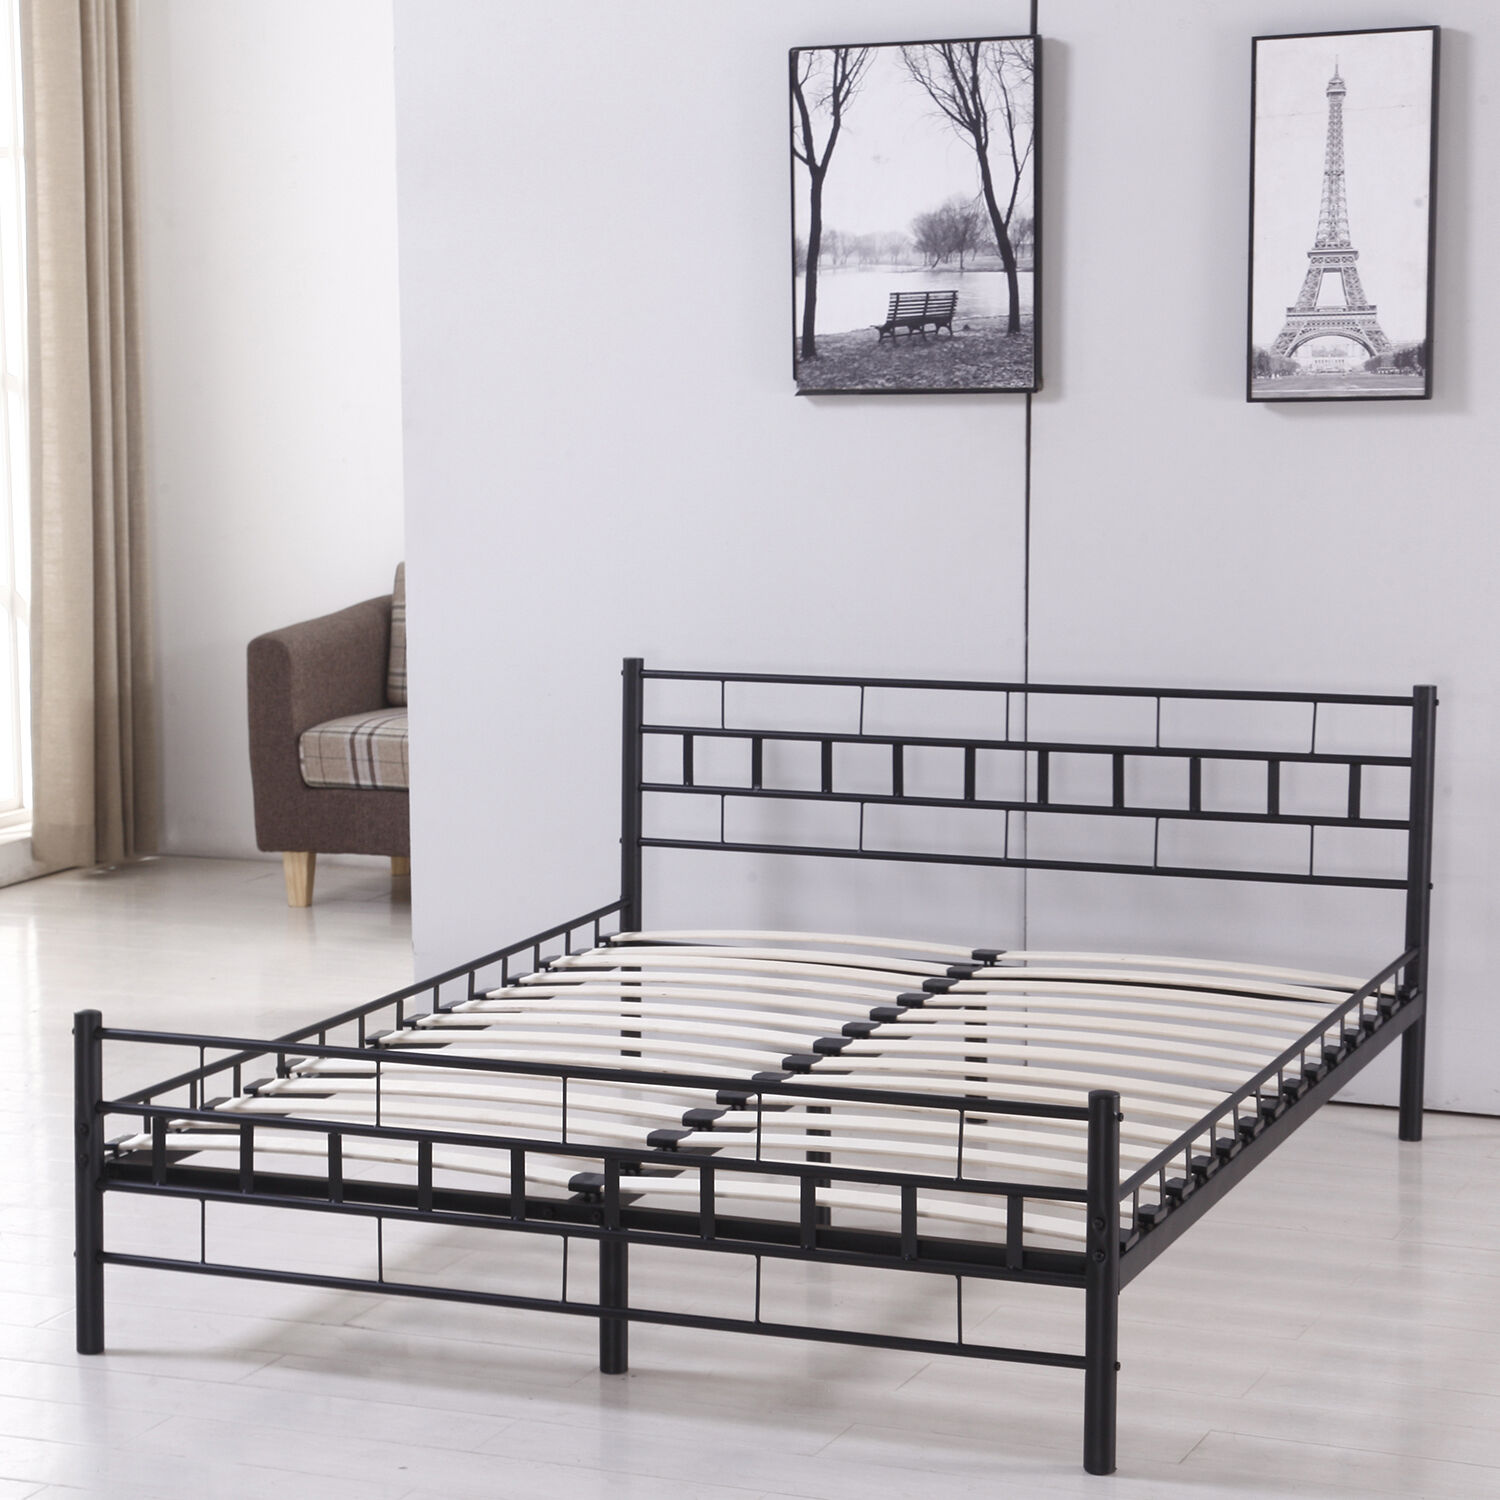 full slat size wood bed frame platform headboard footboard bedroom furniture new 814644023628 ebay. Black Bedroom Furniture Sets. Home Design Ideas